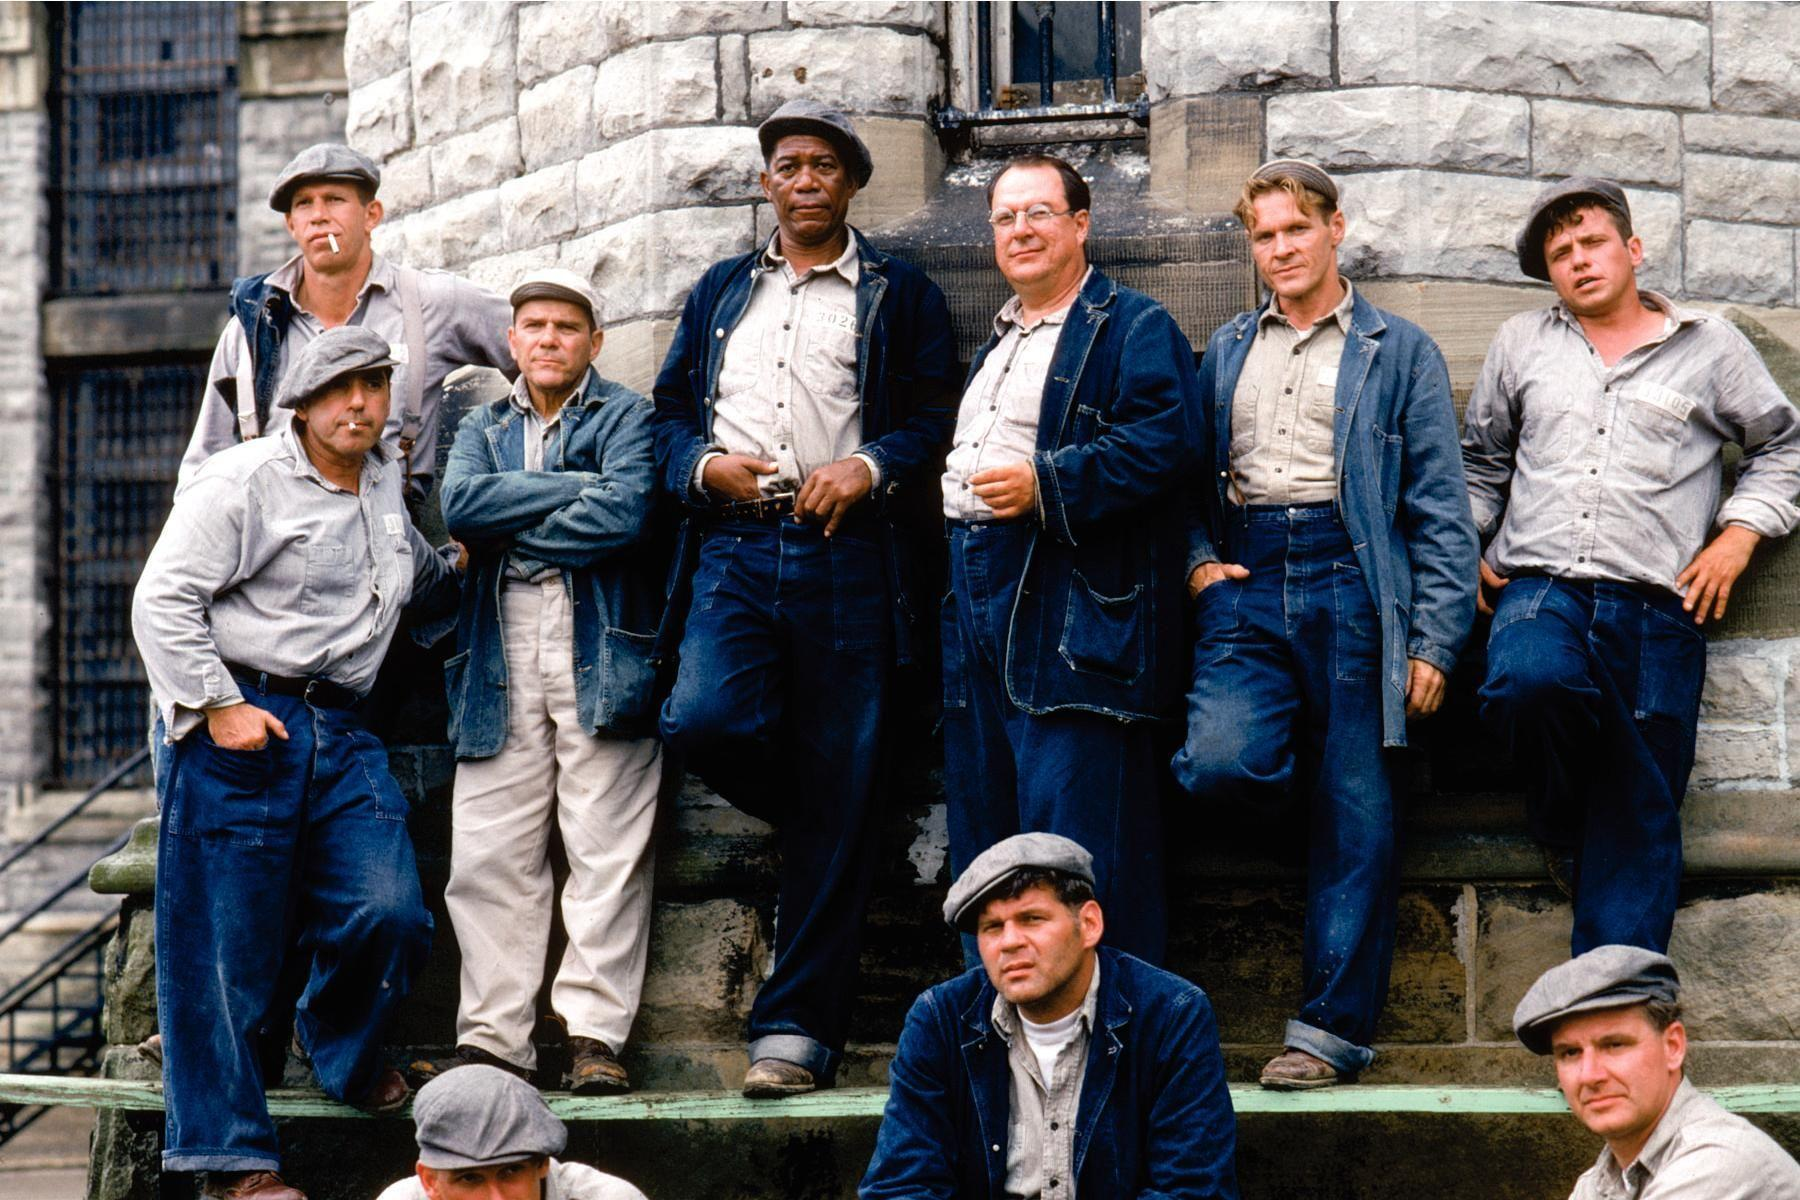 The Shawshank Redemption Wallpapers High Quality Download 1800x1200